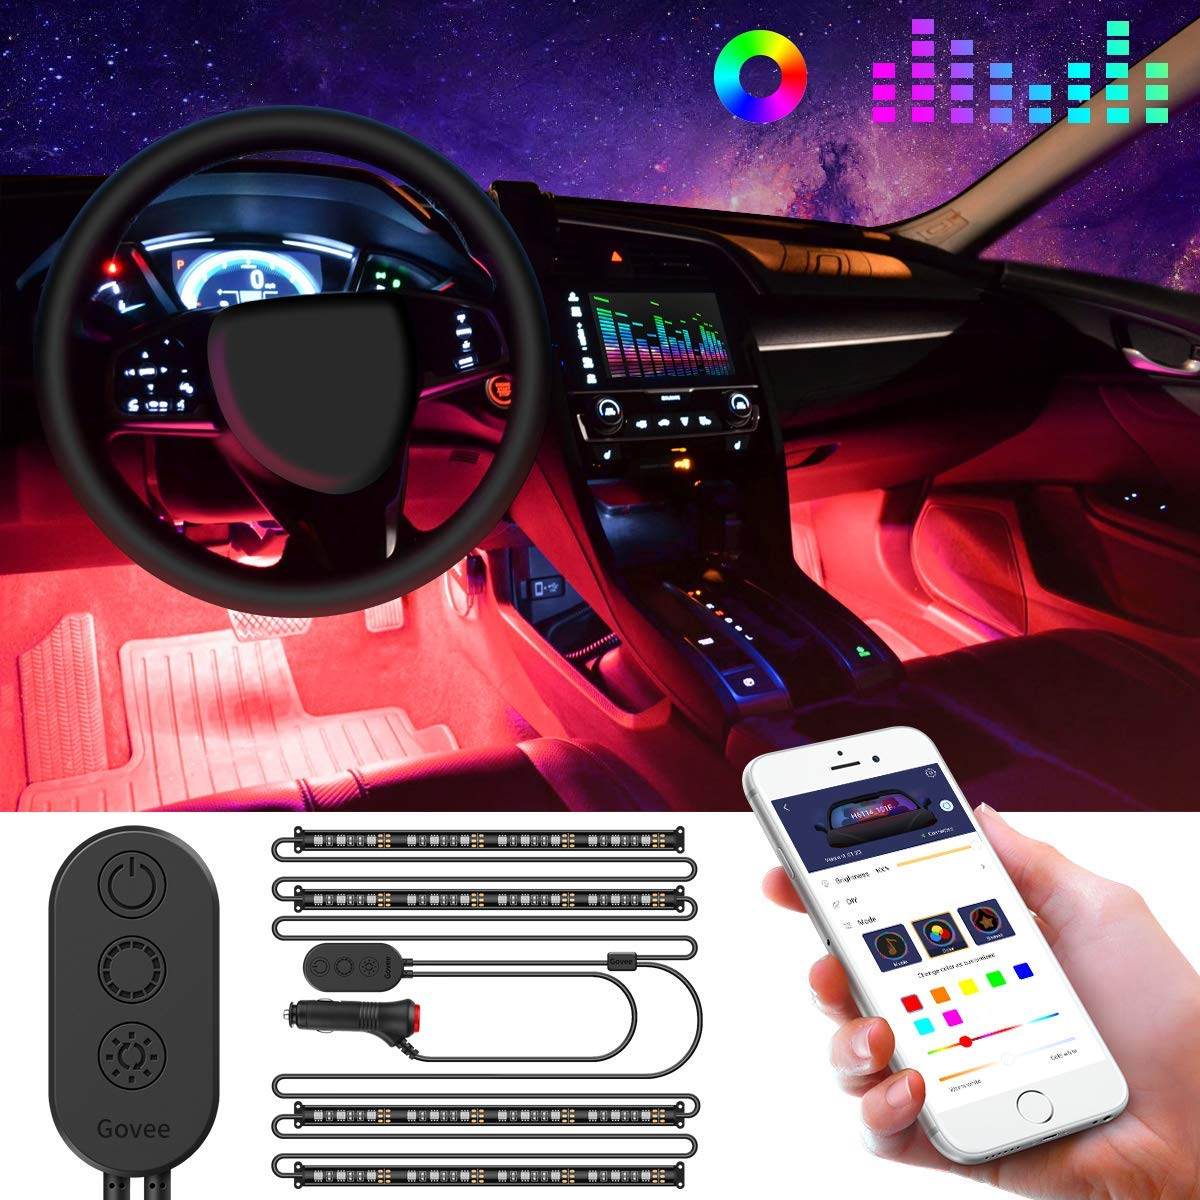 Interior Car Lights LED Strip Light Waterproof 4pcs 48 LED APP Controller Lighting Kits Multi DIY Color Music Under Dash Car Lighting with Car Charger